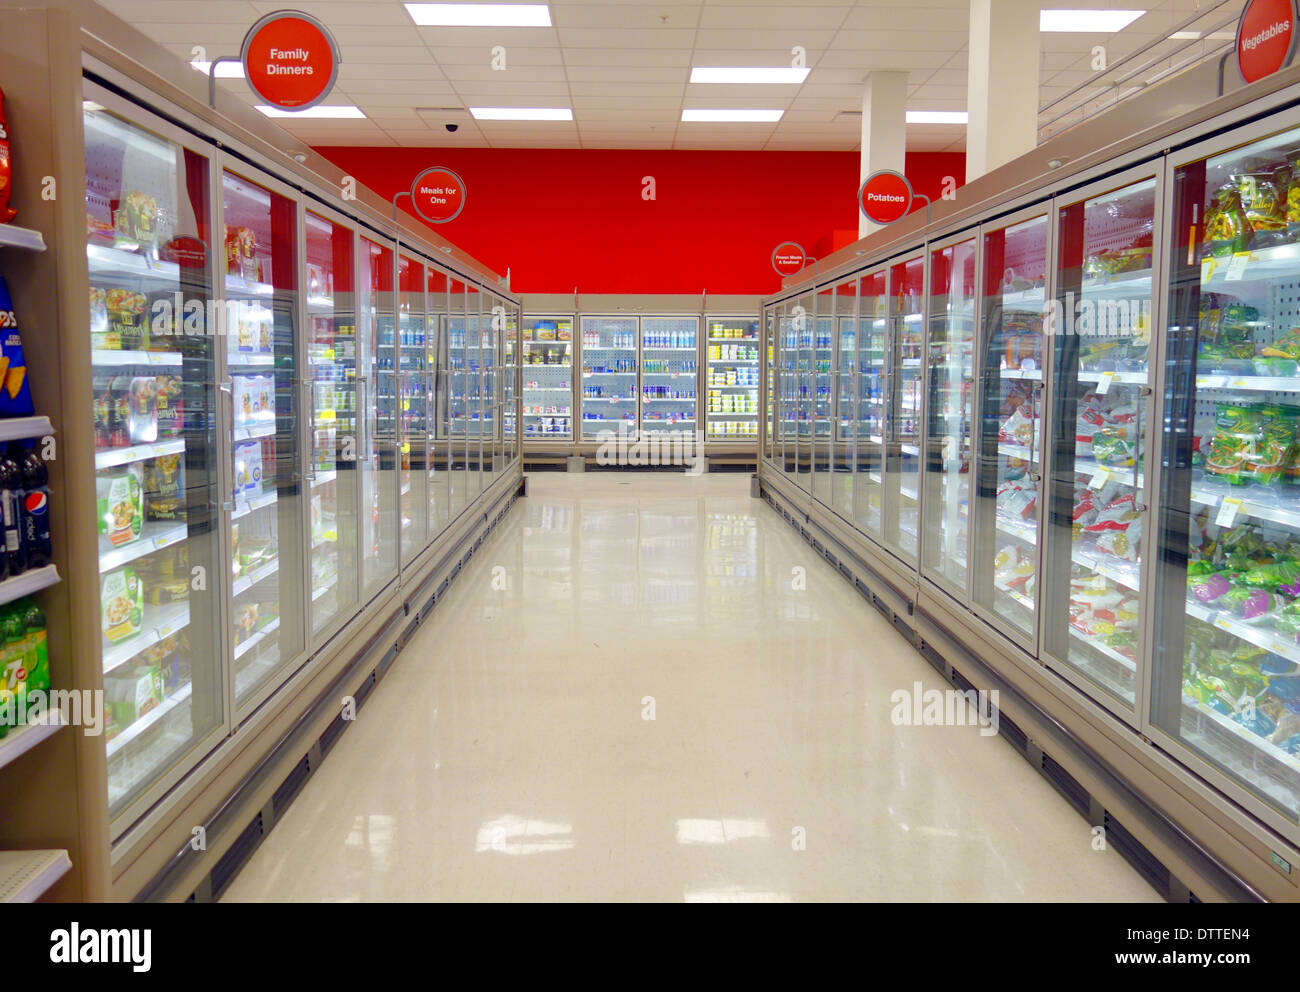 Frozen food aisle and refrigerators in a supermarket in Toronto, Canada - Stock Image